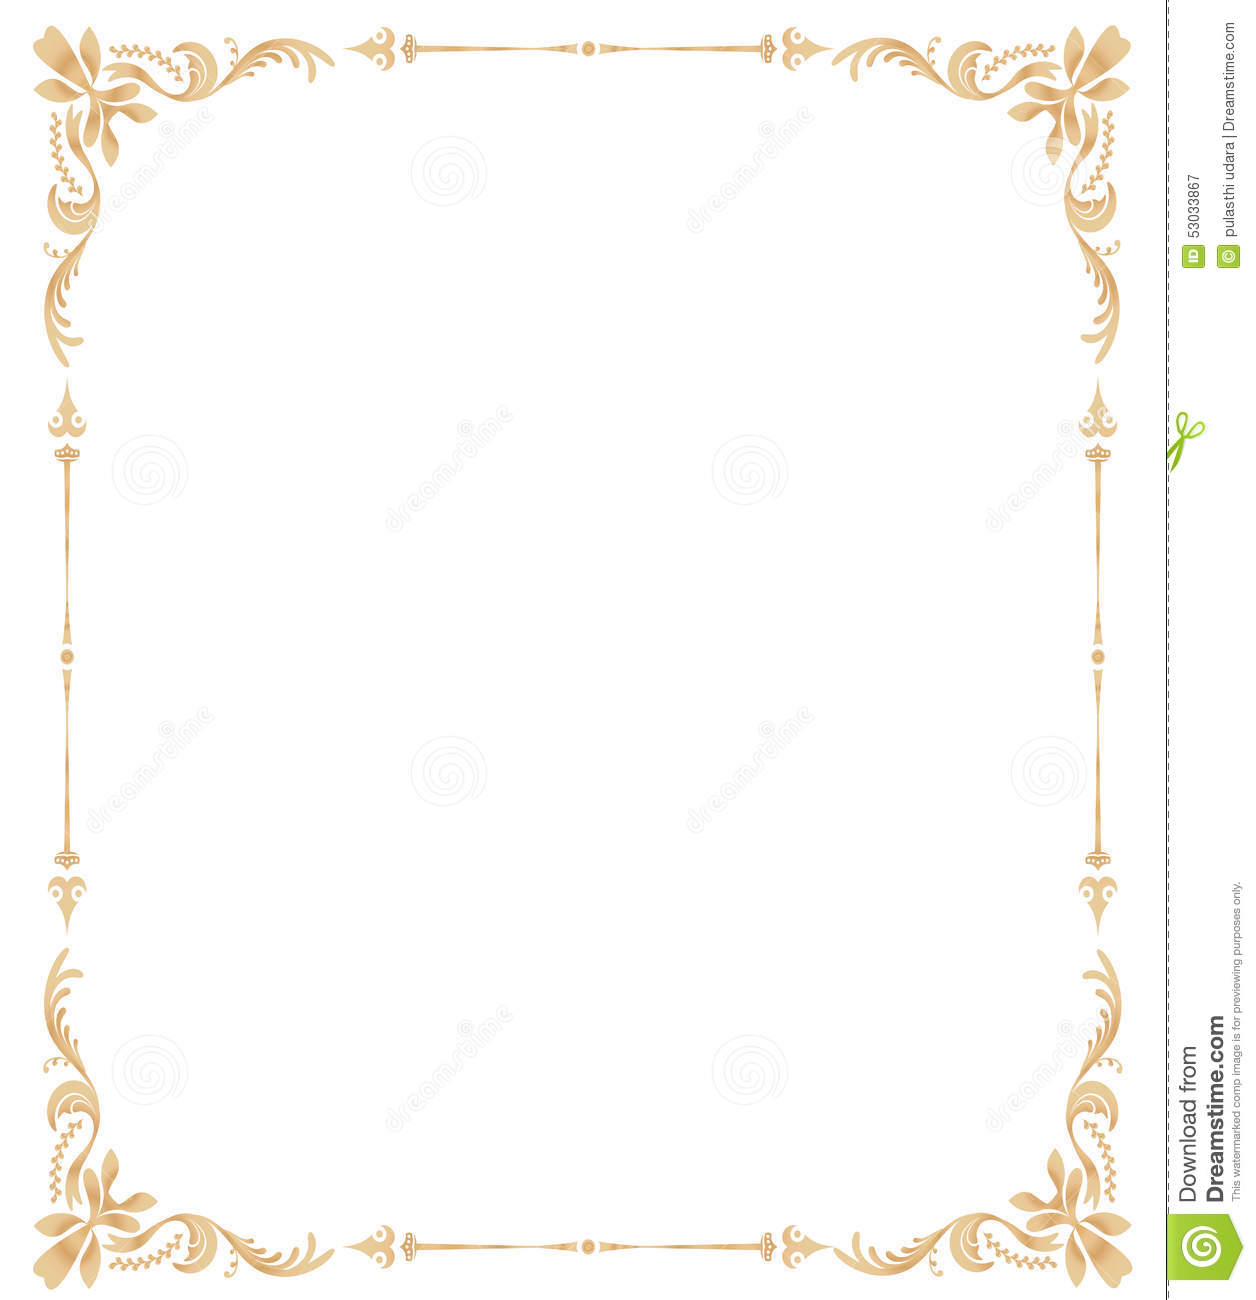 ornateswirlframe stock illustration image of clip